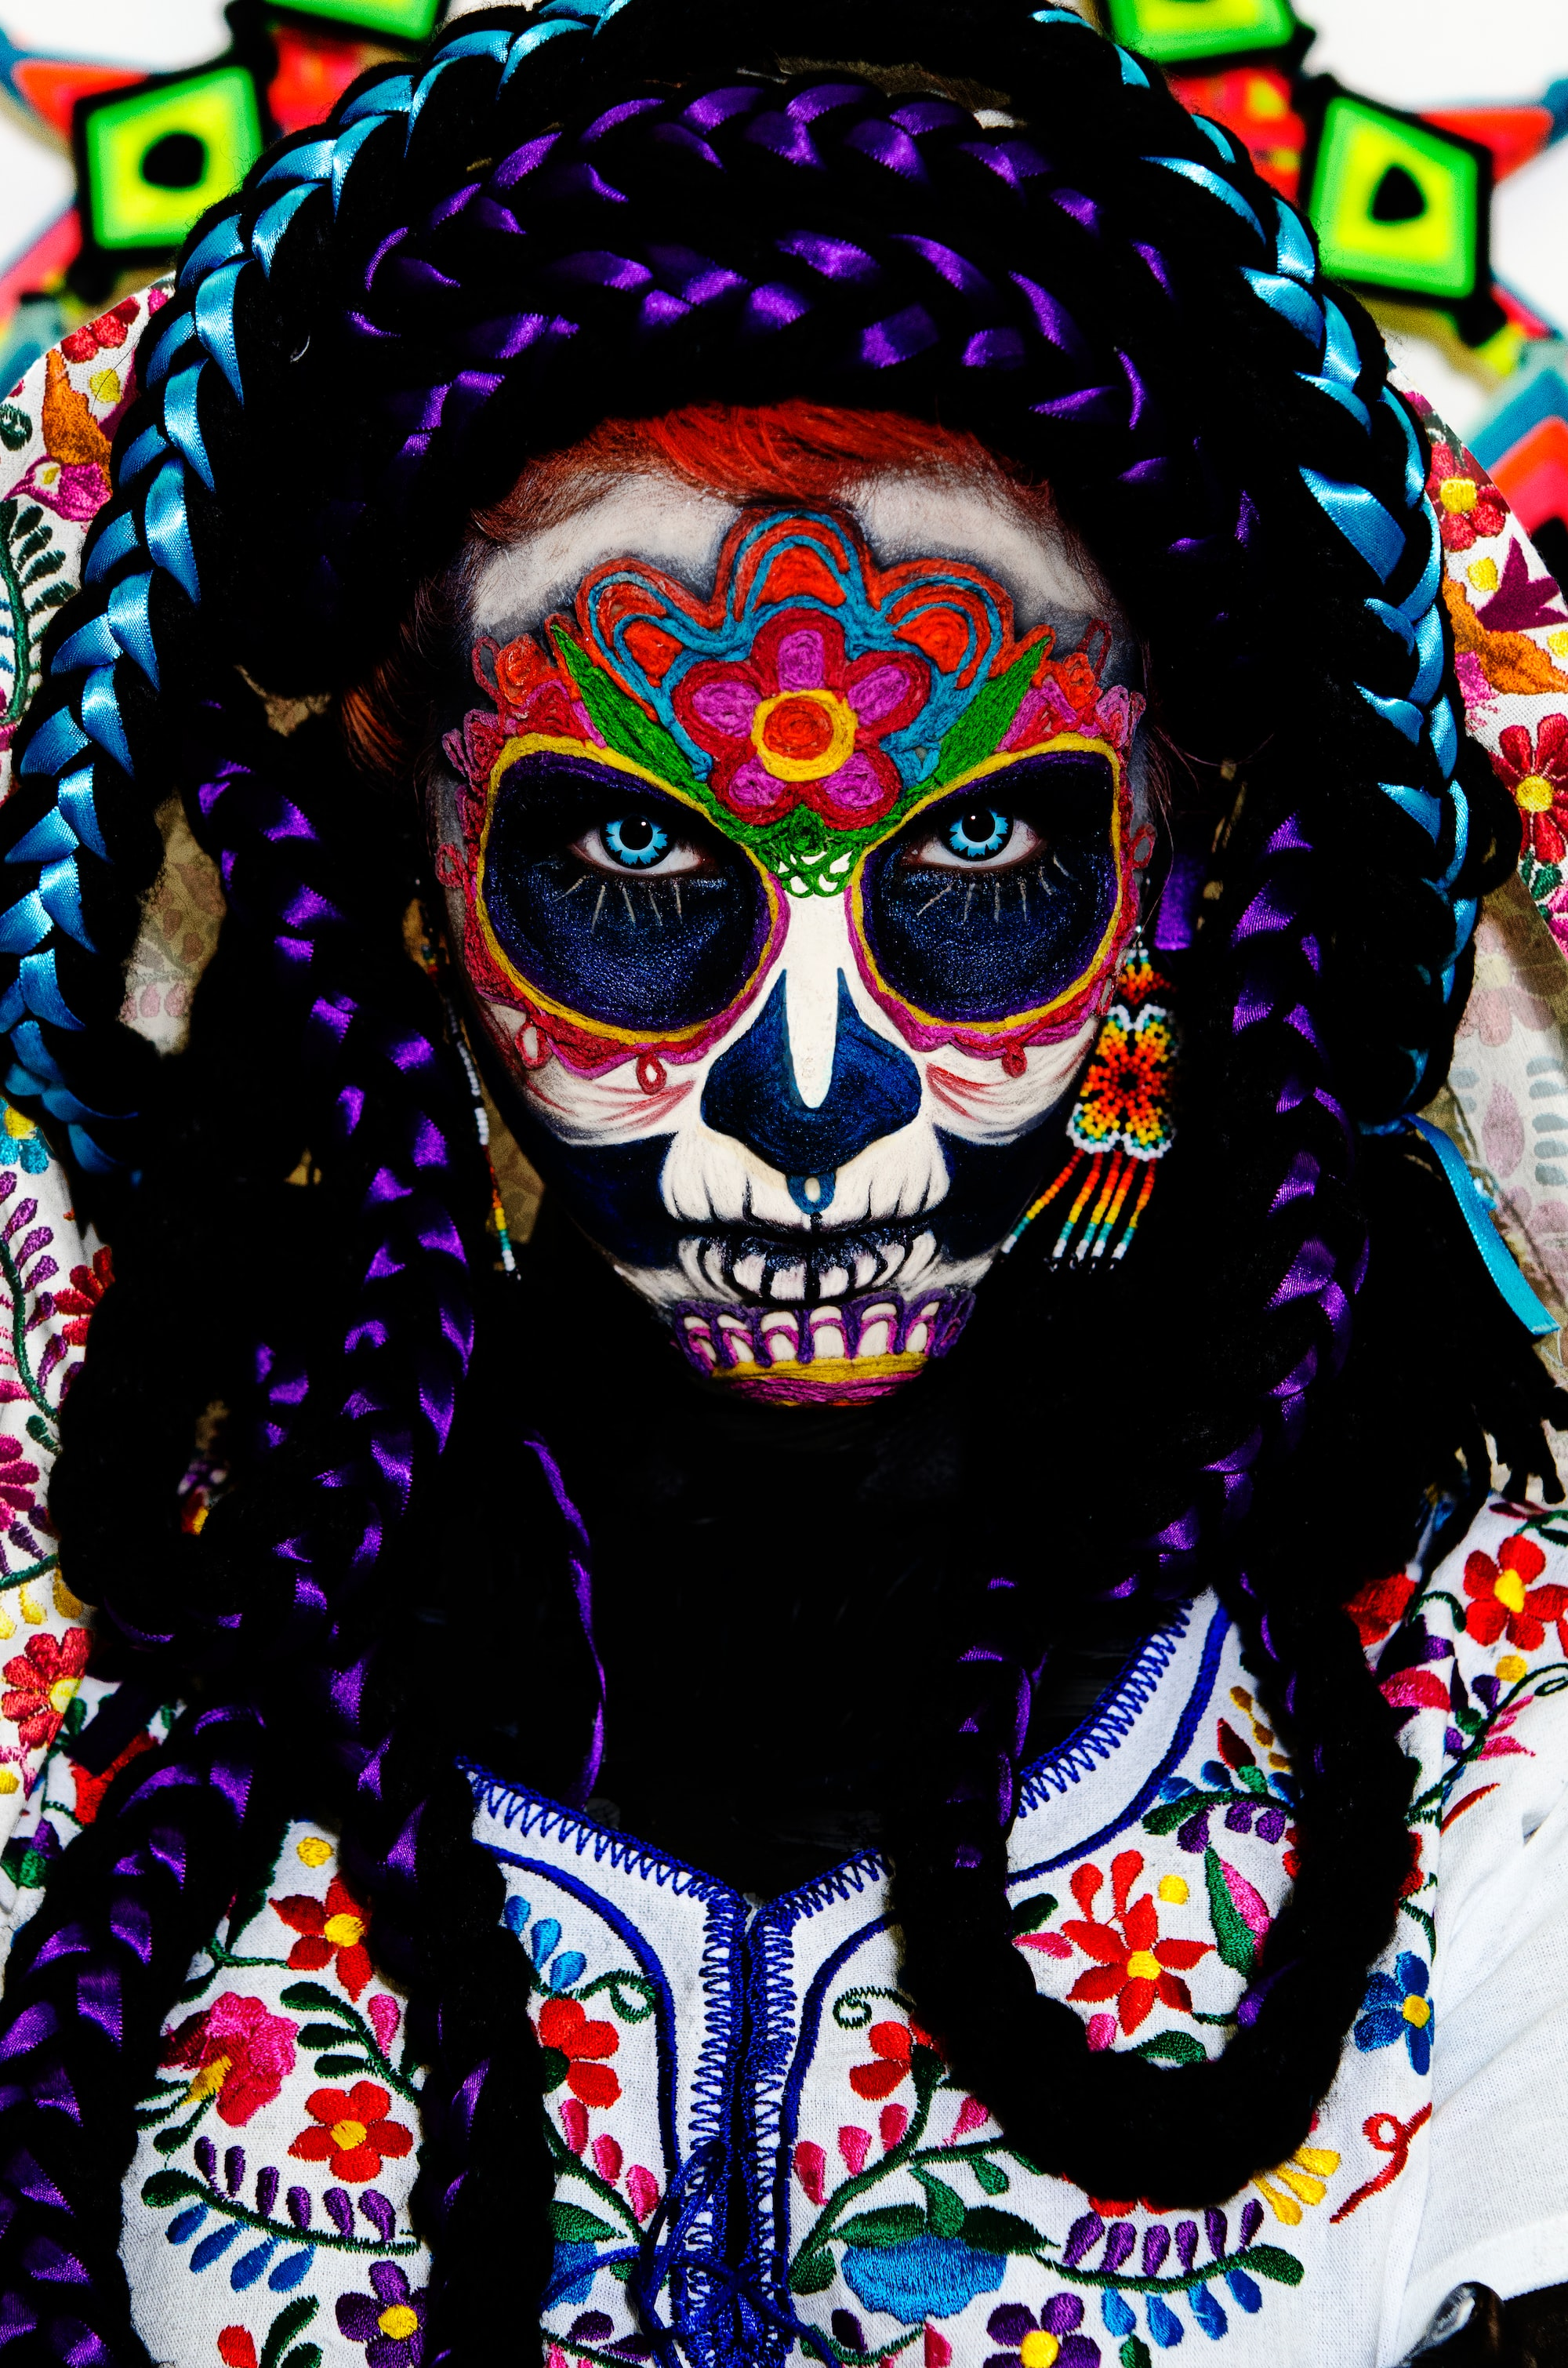 Music: Mexican Gothic